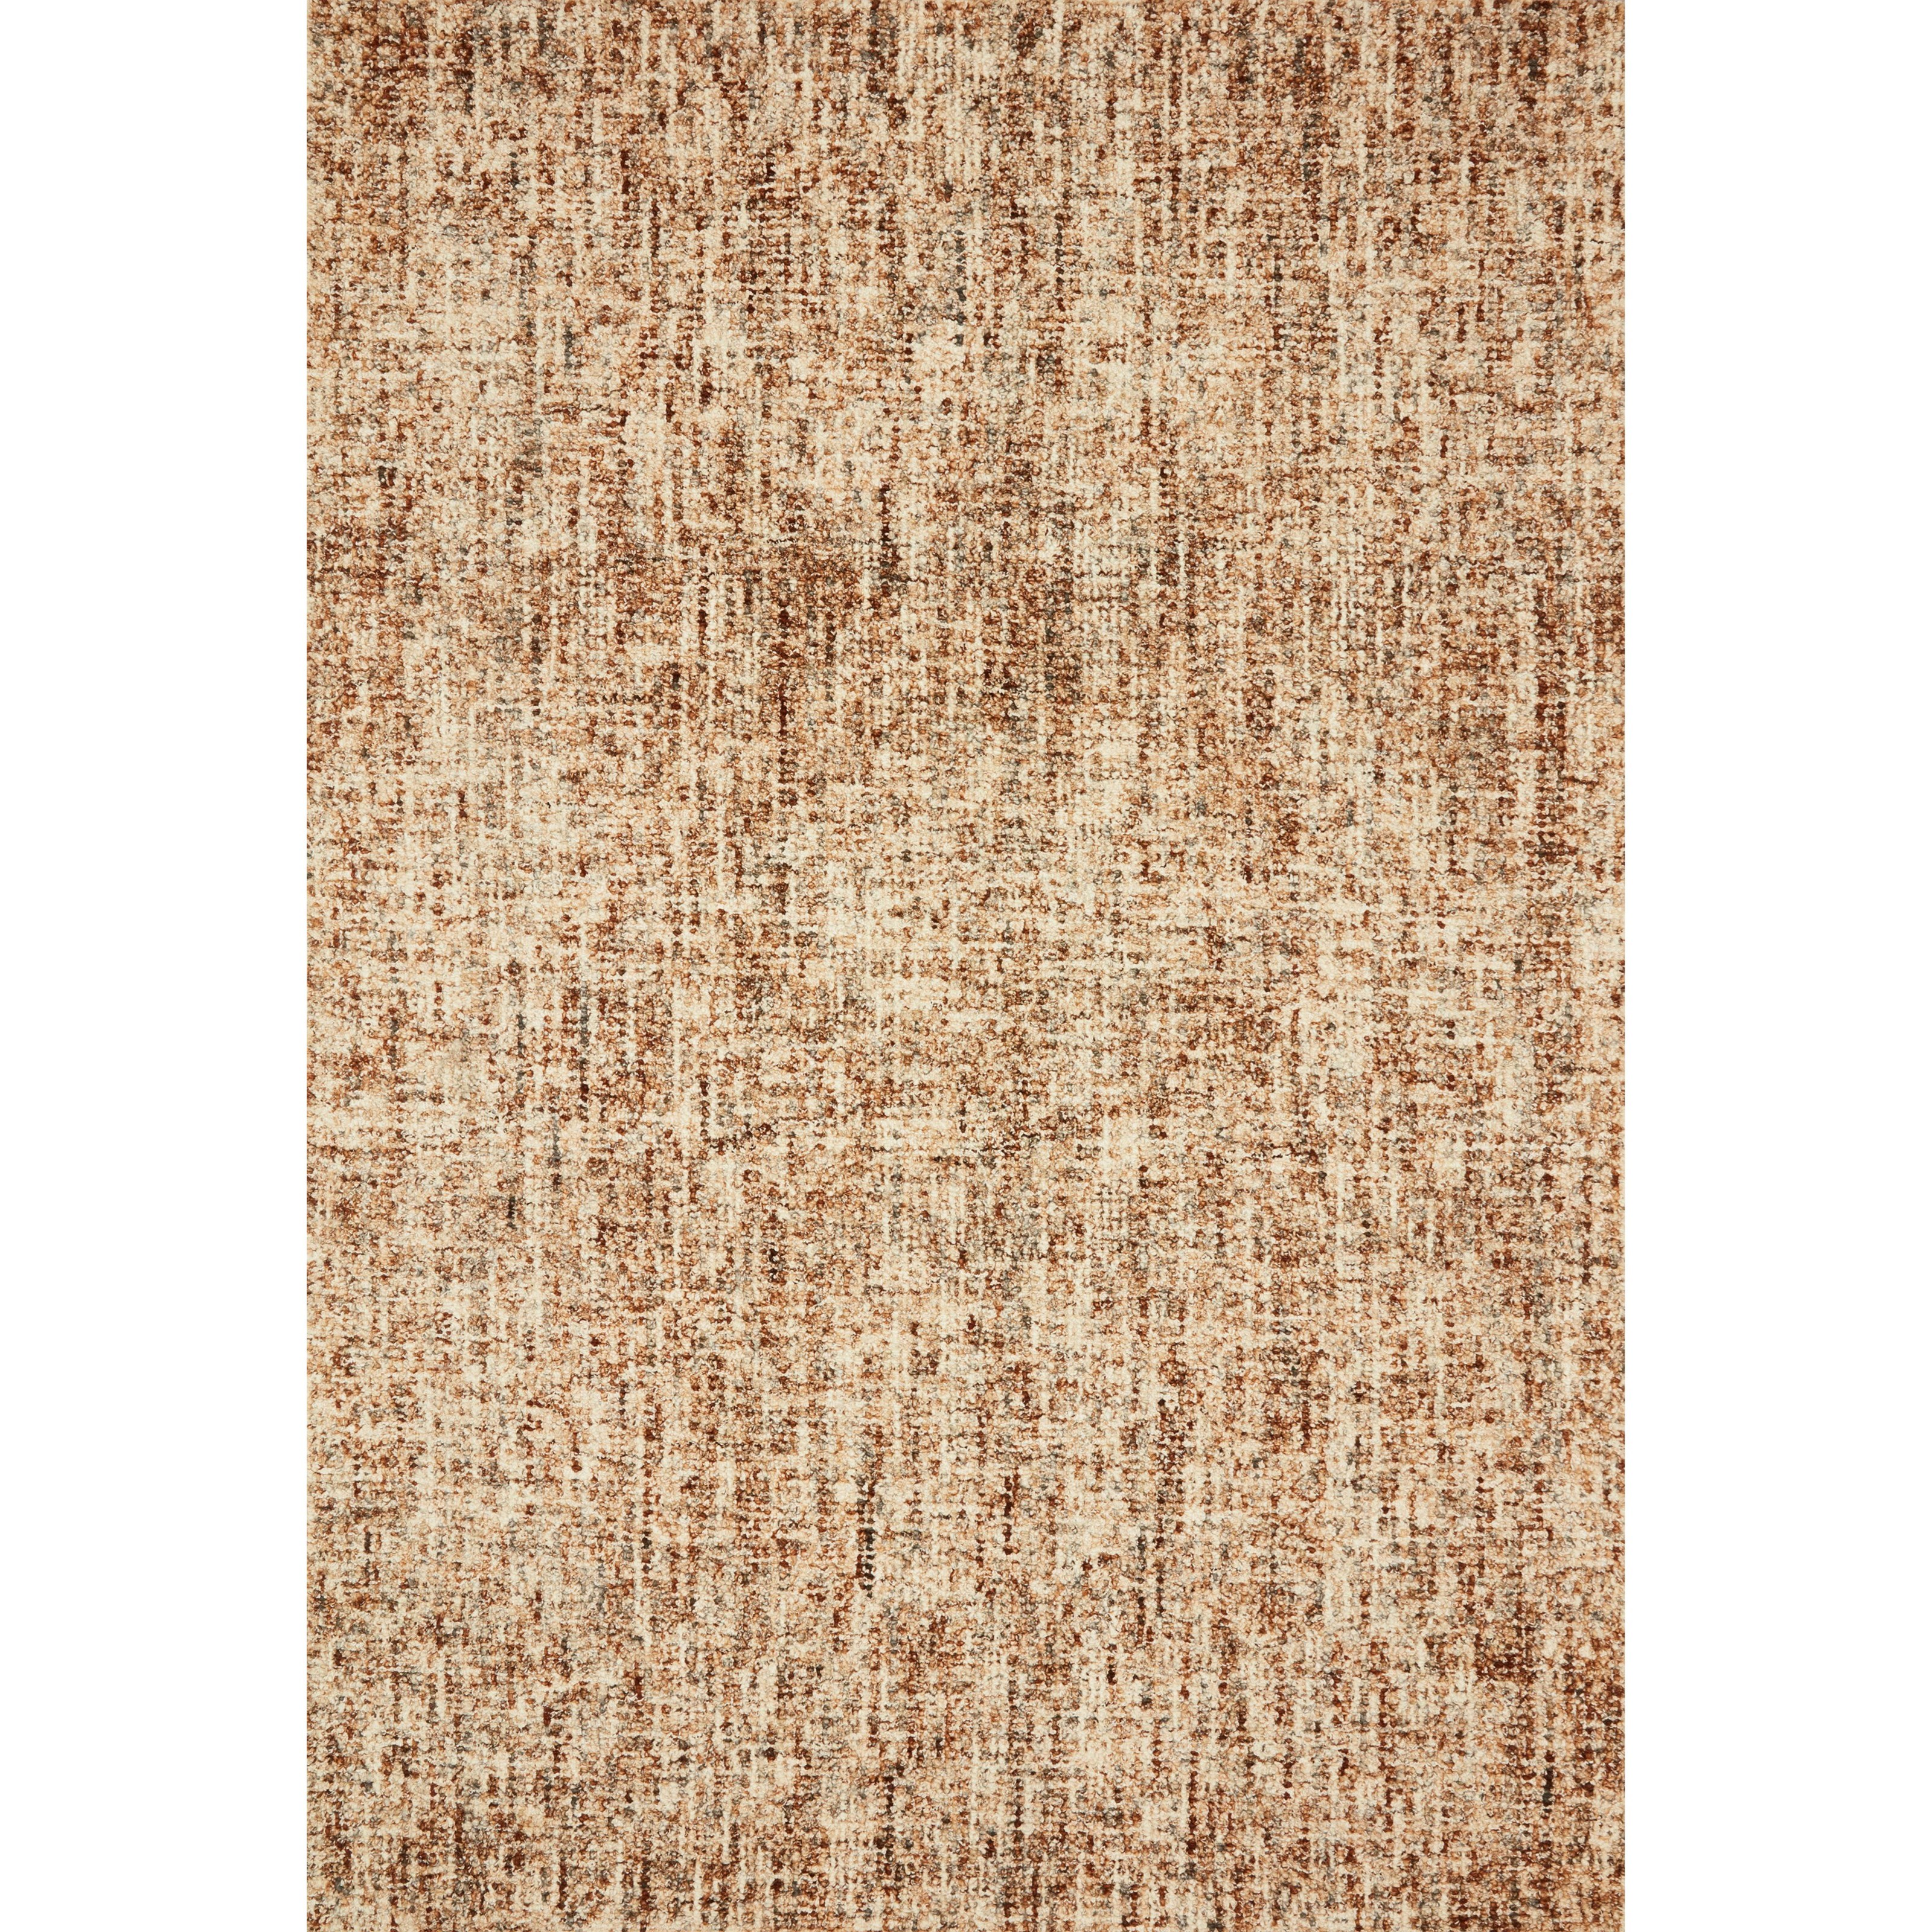 """Harlow 7'9"""" x 9'9"""" Rust / Charcoal Rug by Loloi Rugs at Belfort Furniture"""